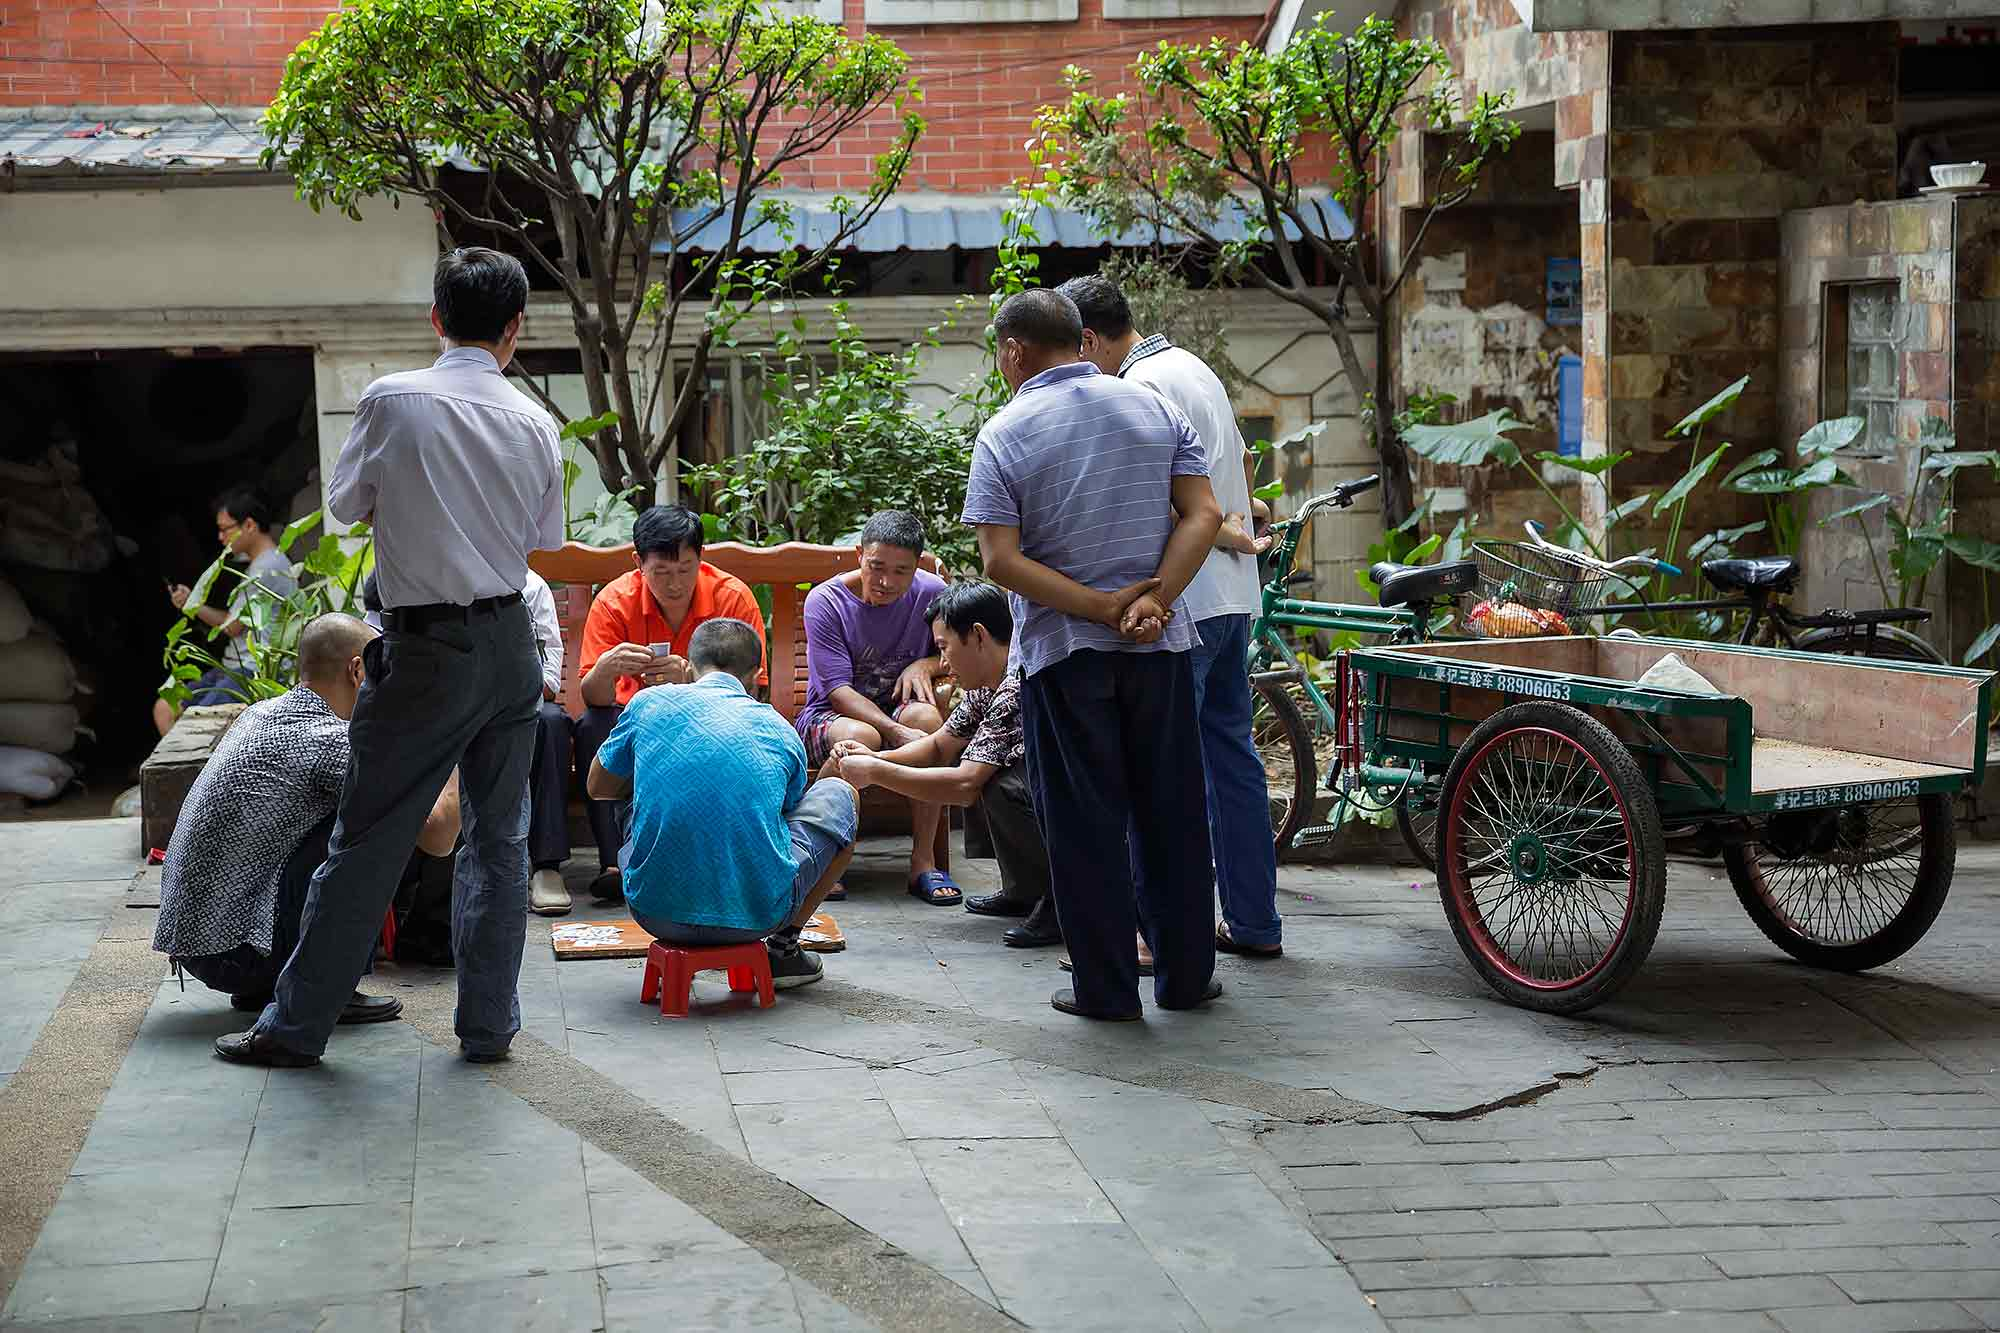 Playing a game of Mahjong in the streets of Guangzhou. © Ulli Maier & Nisa Maier